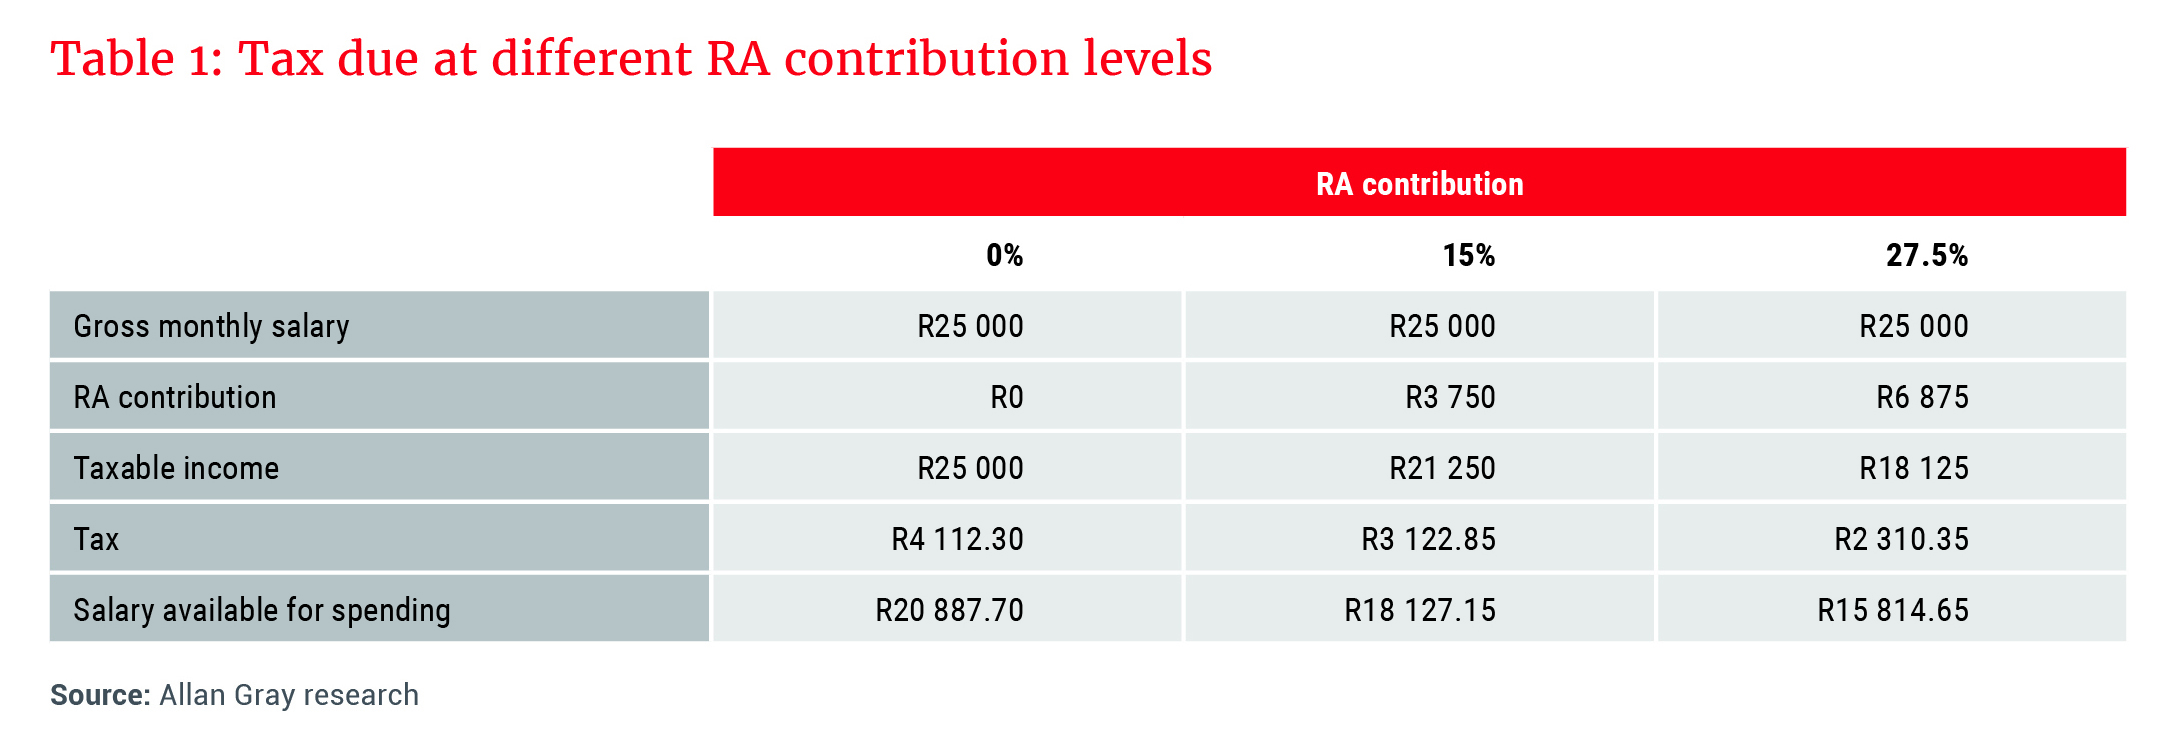 Tax due at different RA contribution levels